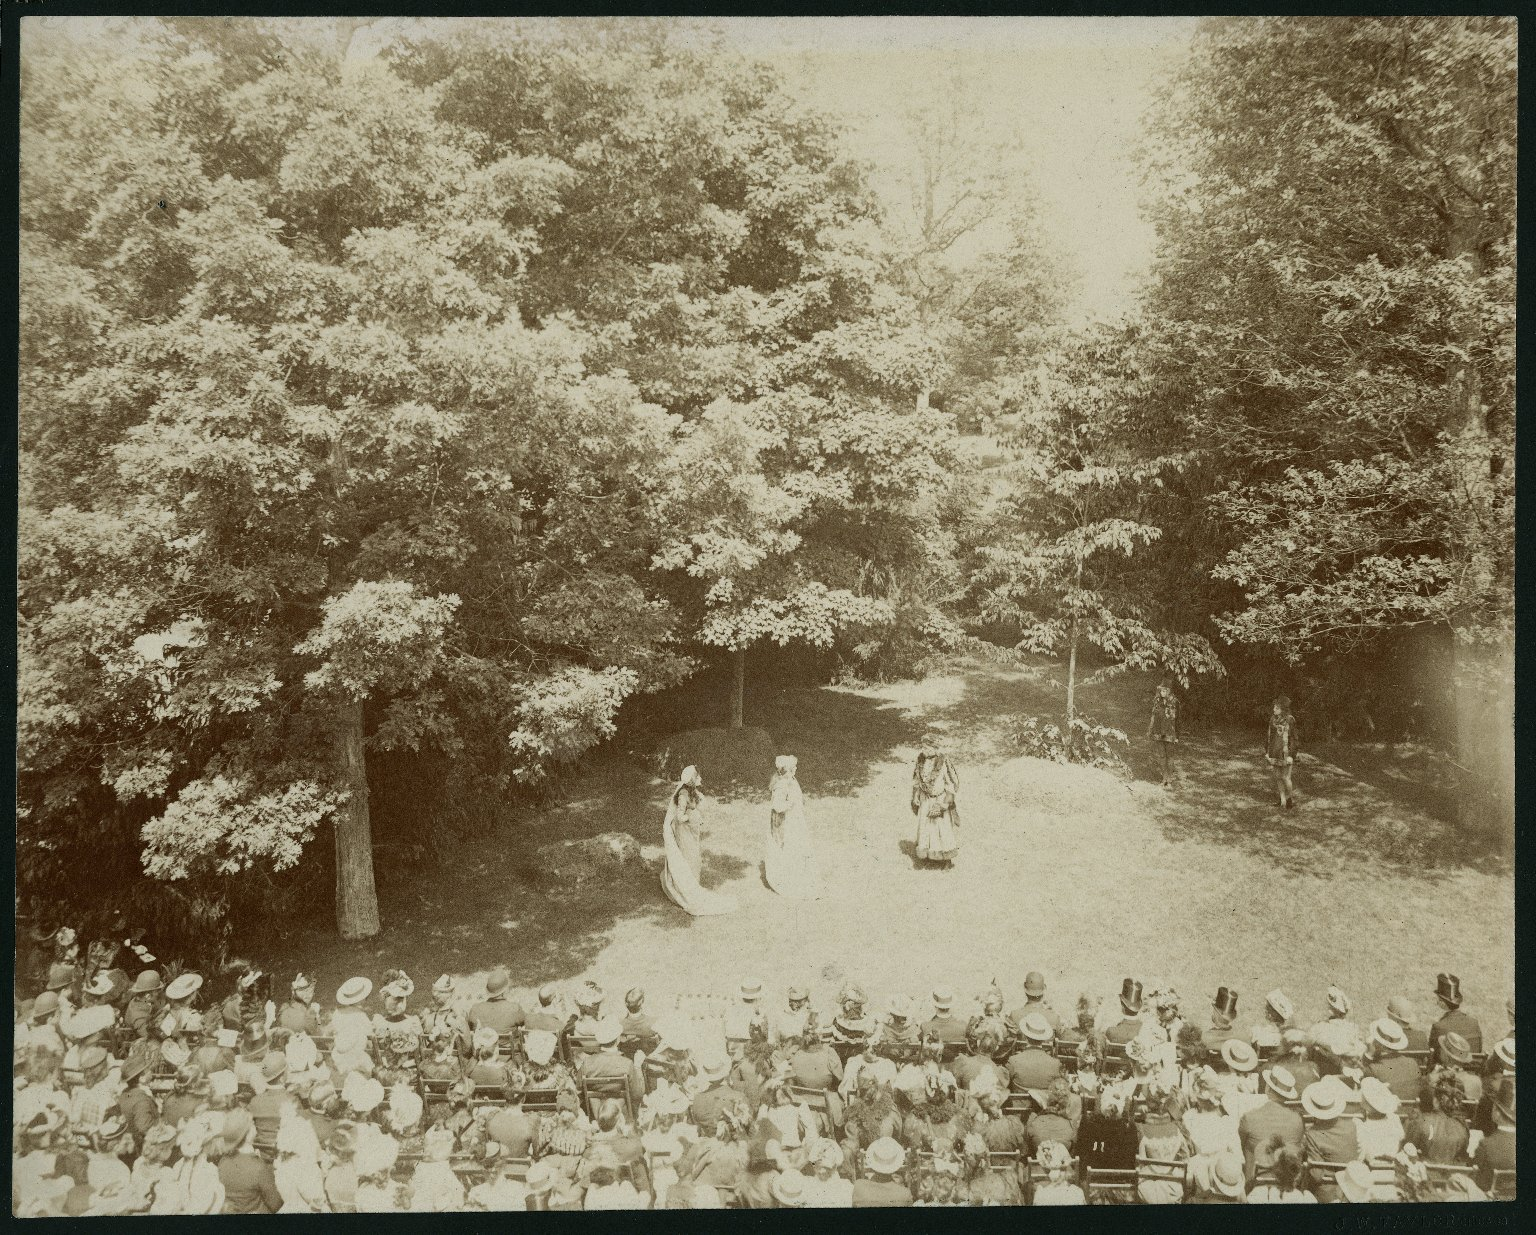 [Shakespeare's As you like it, a pastoral performance] [graphic] : [9 photographs of Augustin Daly's production at Fair Lawn, Lake Forest, Illinois, 1892].